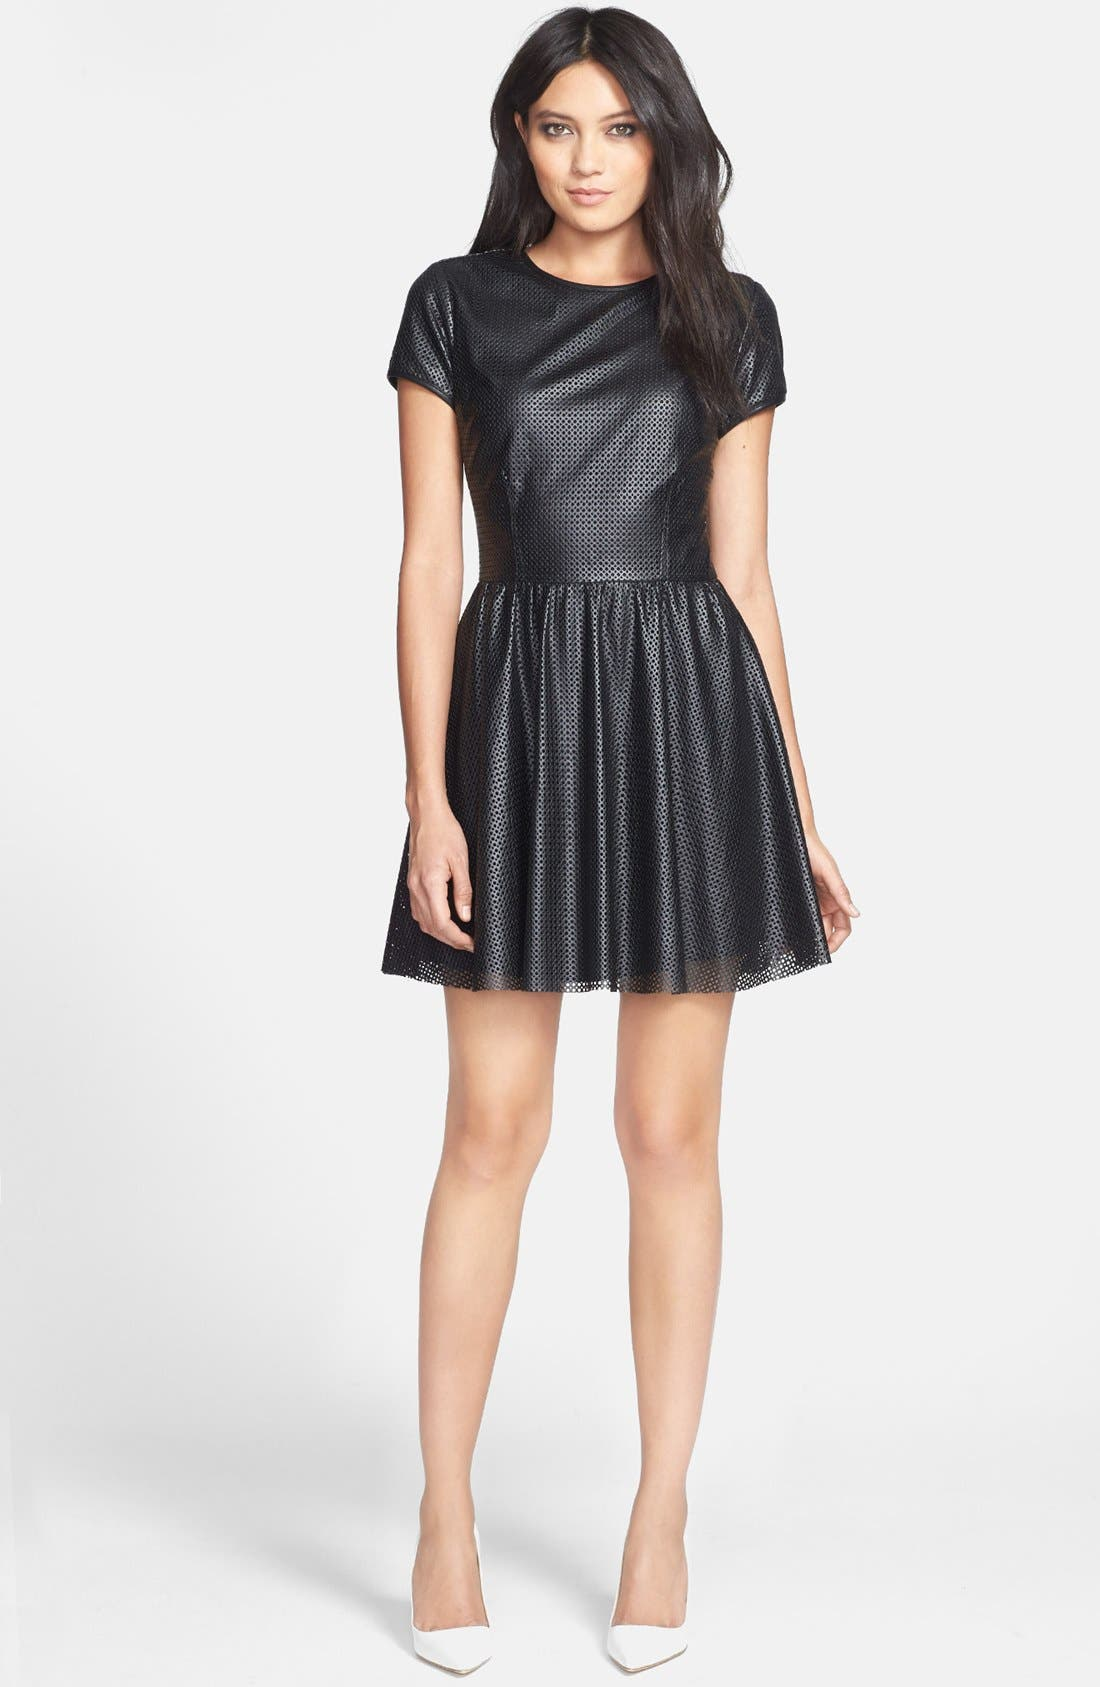 Alternate Image 1 Selected - Lucca Couture Perforated Faux Leather Skater Dress